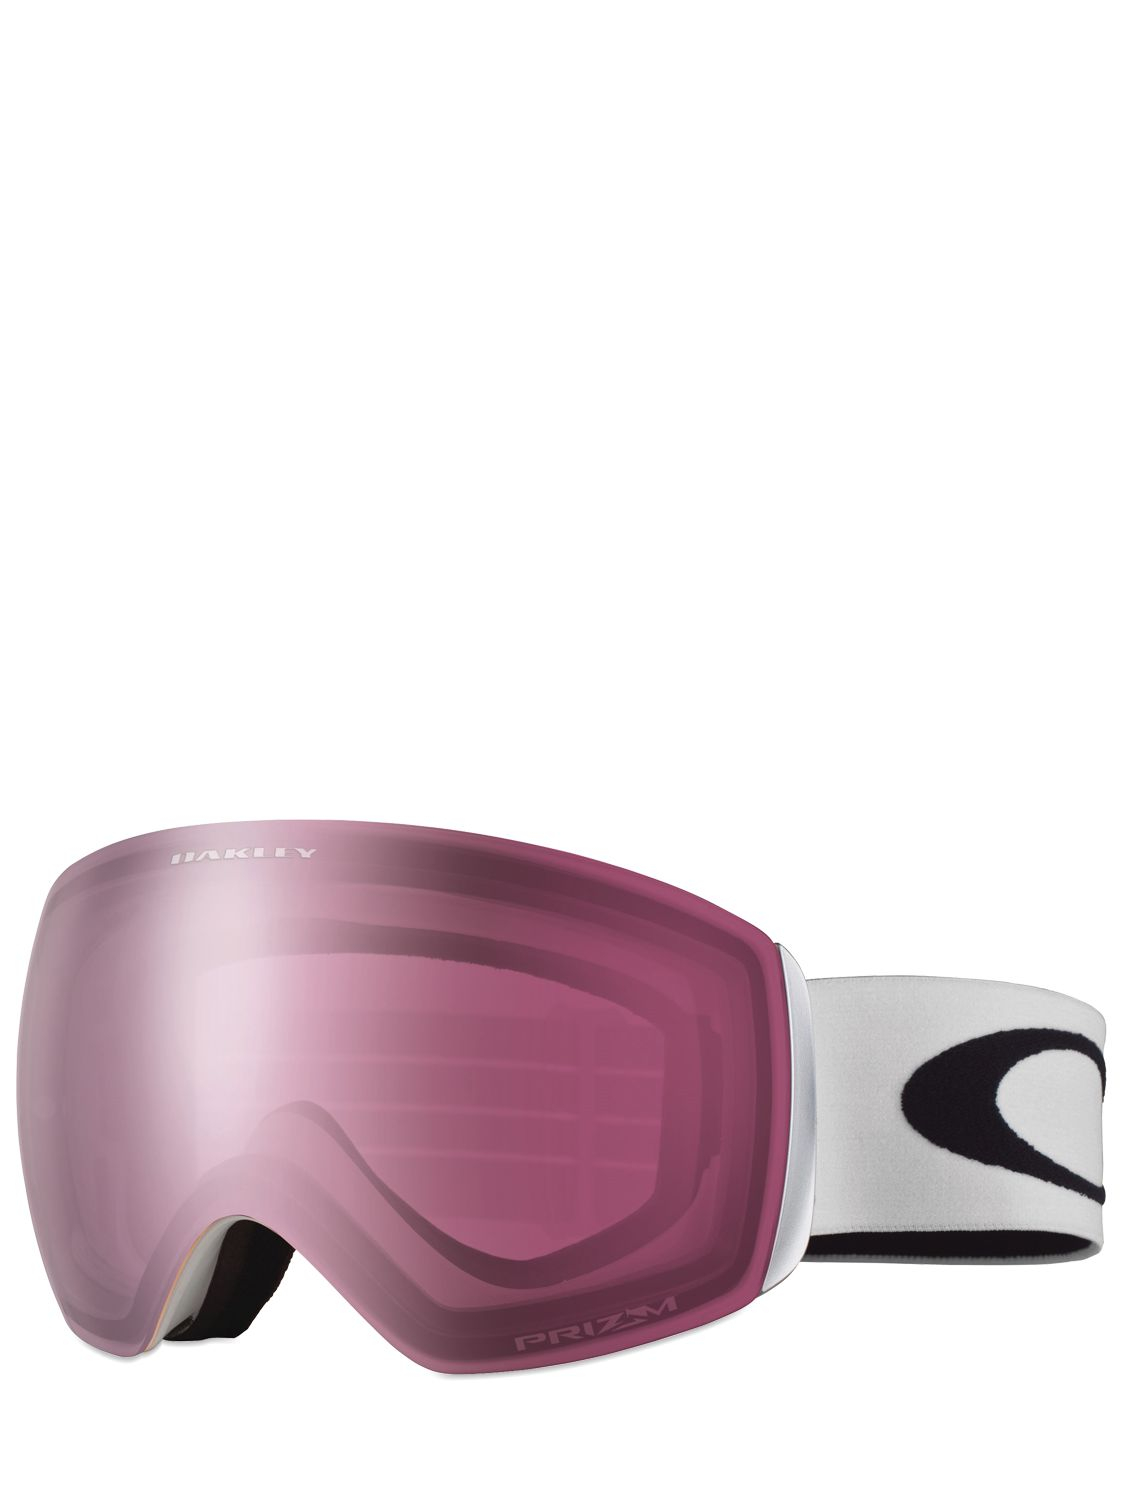 oakley h20 goggles  Oakley Flight Deck Xm Prizm Rose Snow Goggle in Purple